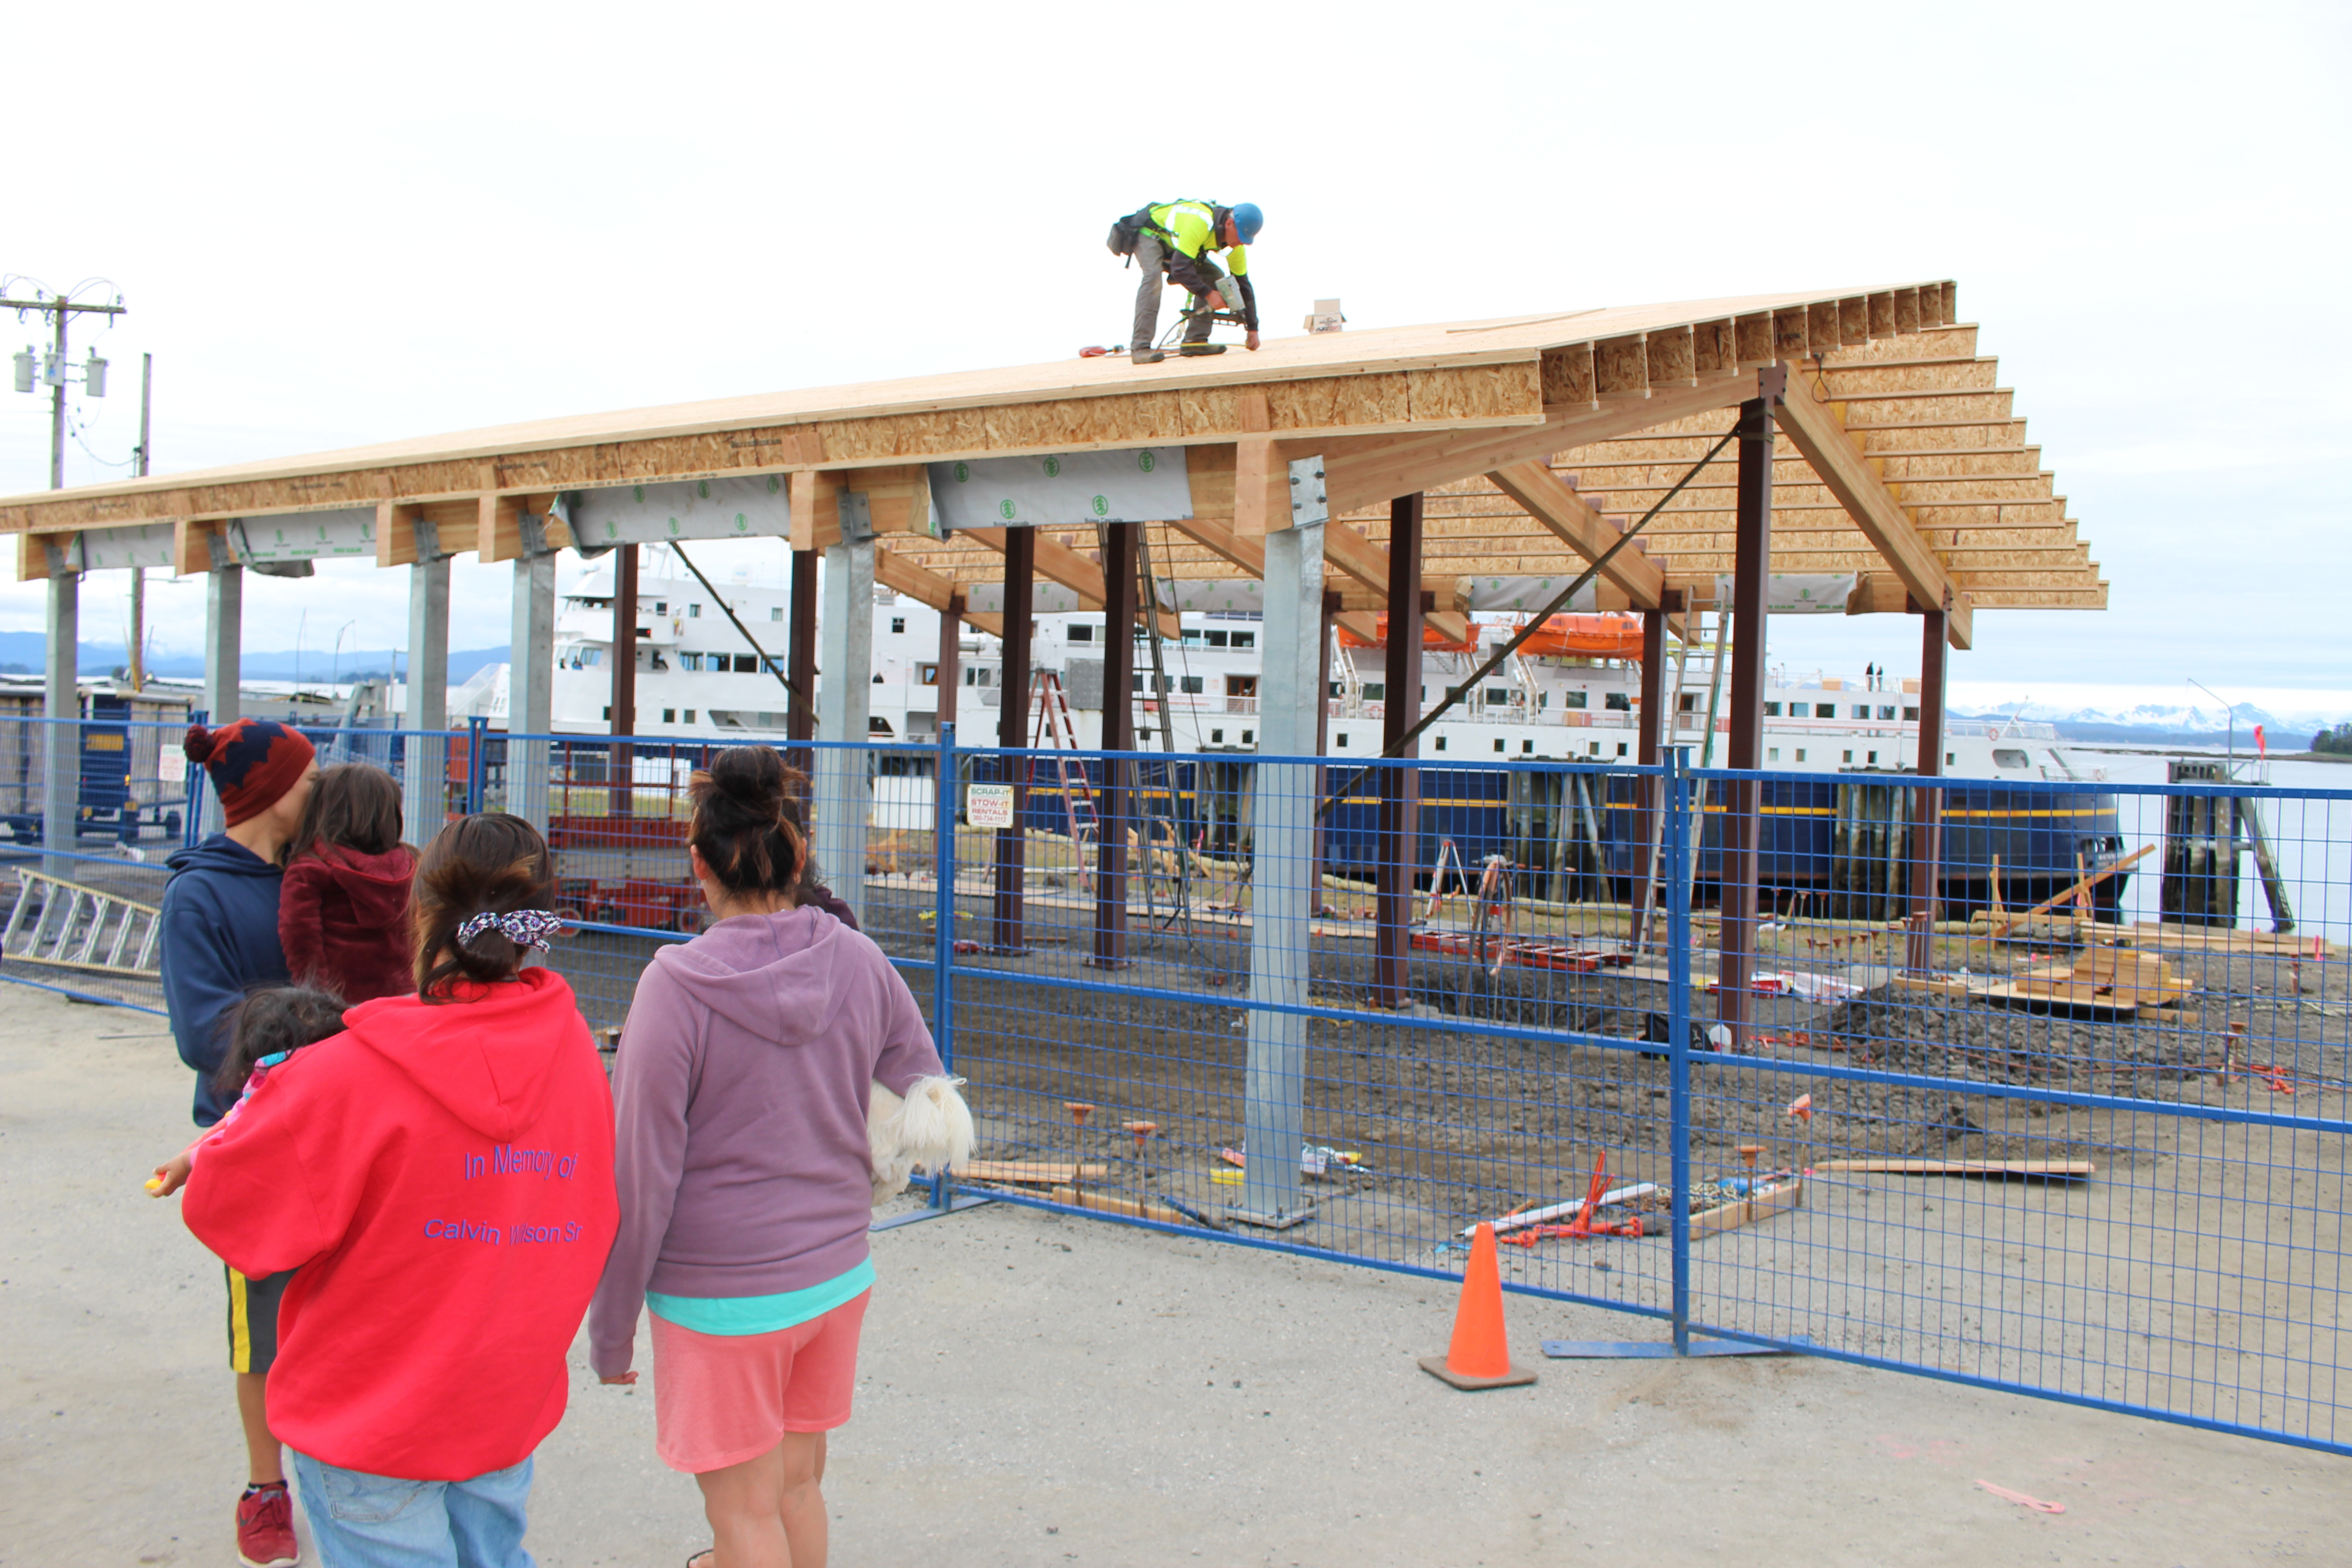 Another view of the ferry terminal building being built in Kake, Alaska.